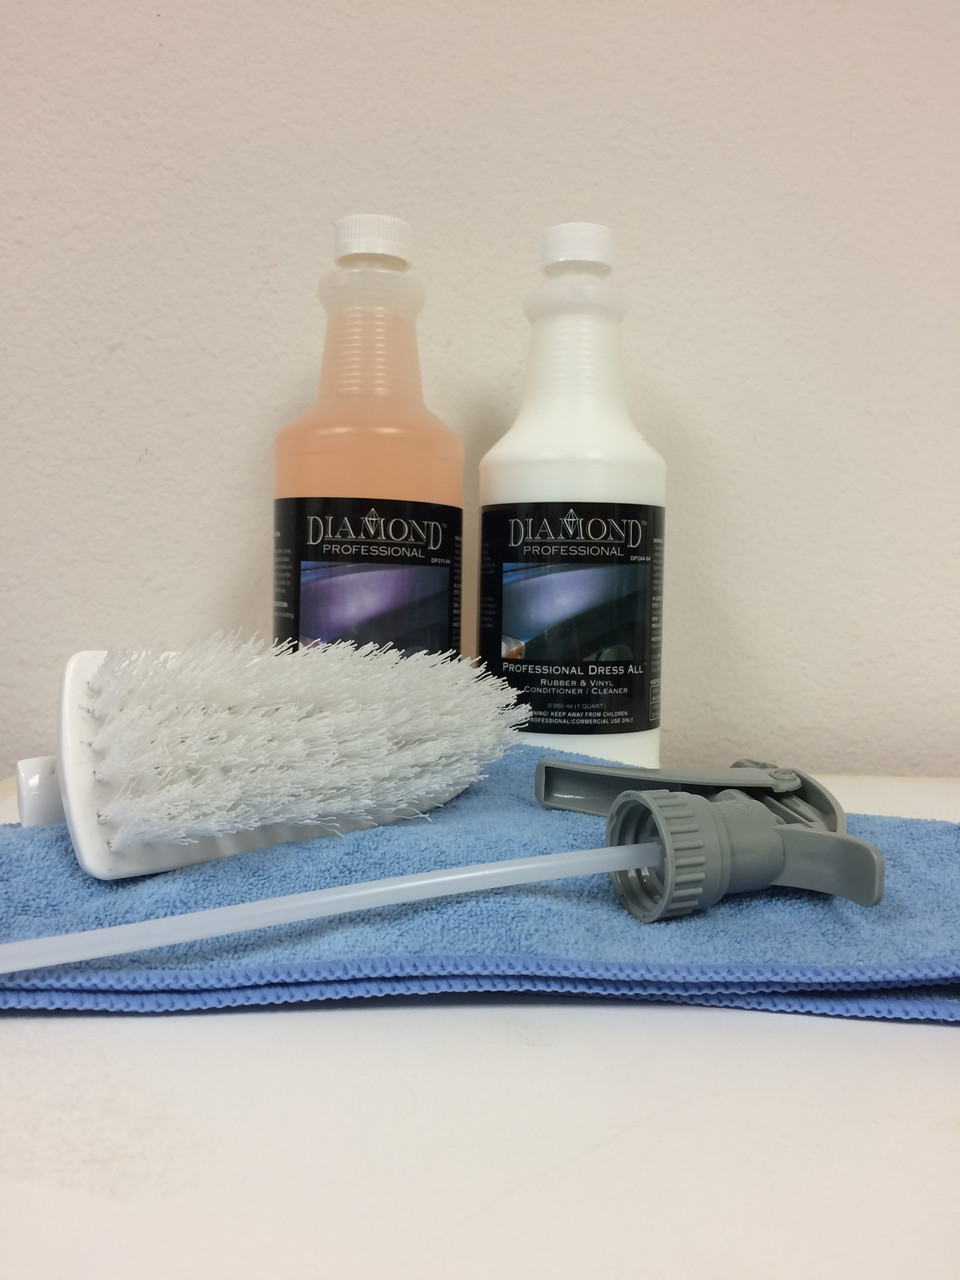 This kit includes: Professional APC  Plus, Dress all, 2 sprayers, a multi-purpose brush, and 2 microfiber towels.